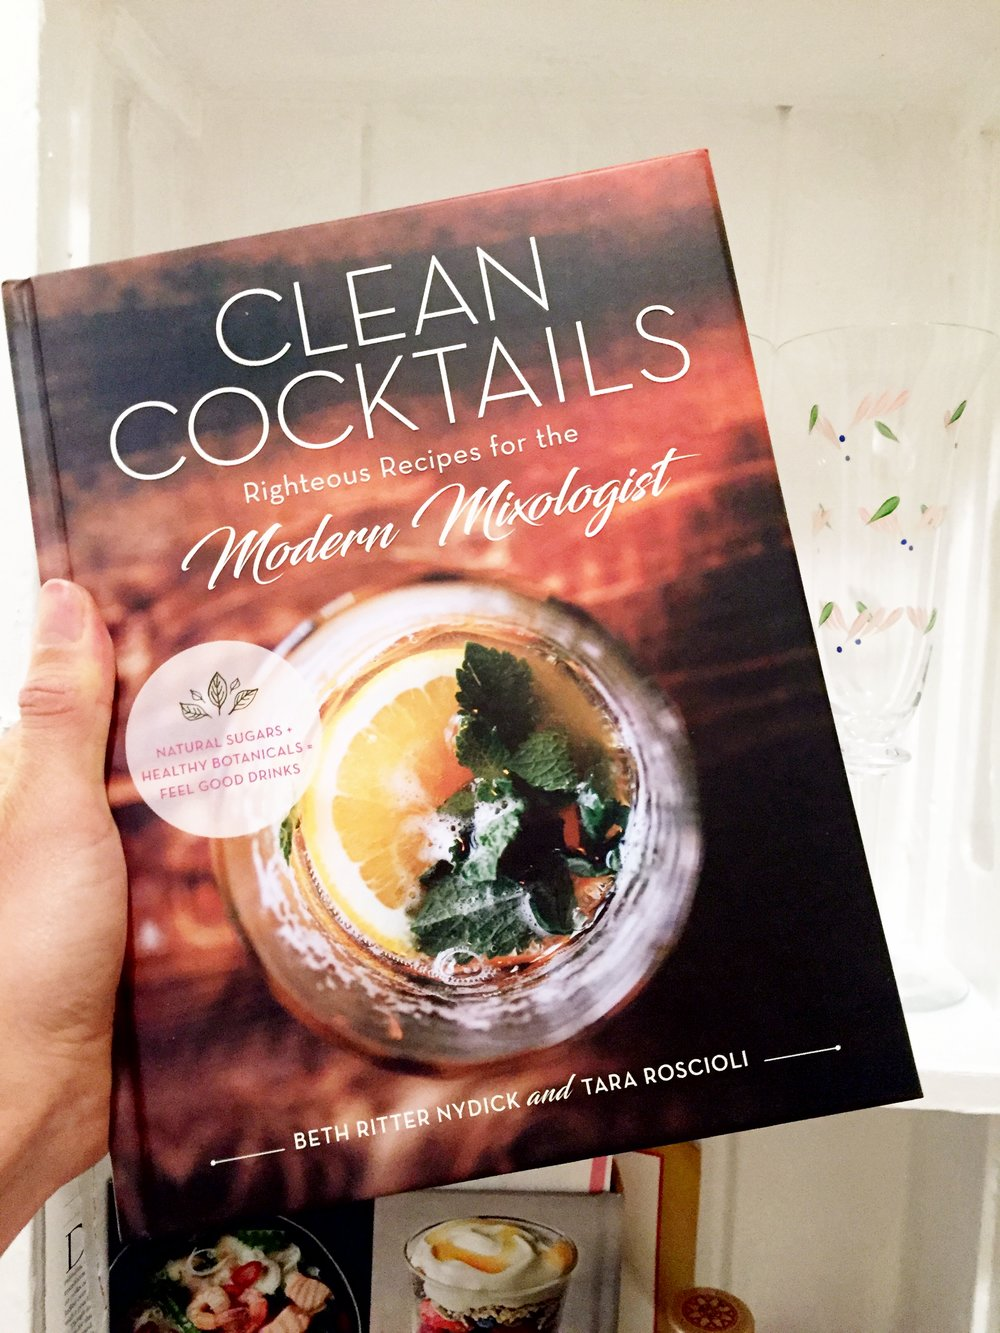 Clean Cocktails: Righteous Recipes for the Modern Mixologist $24